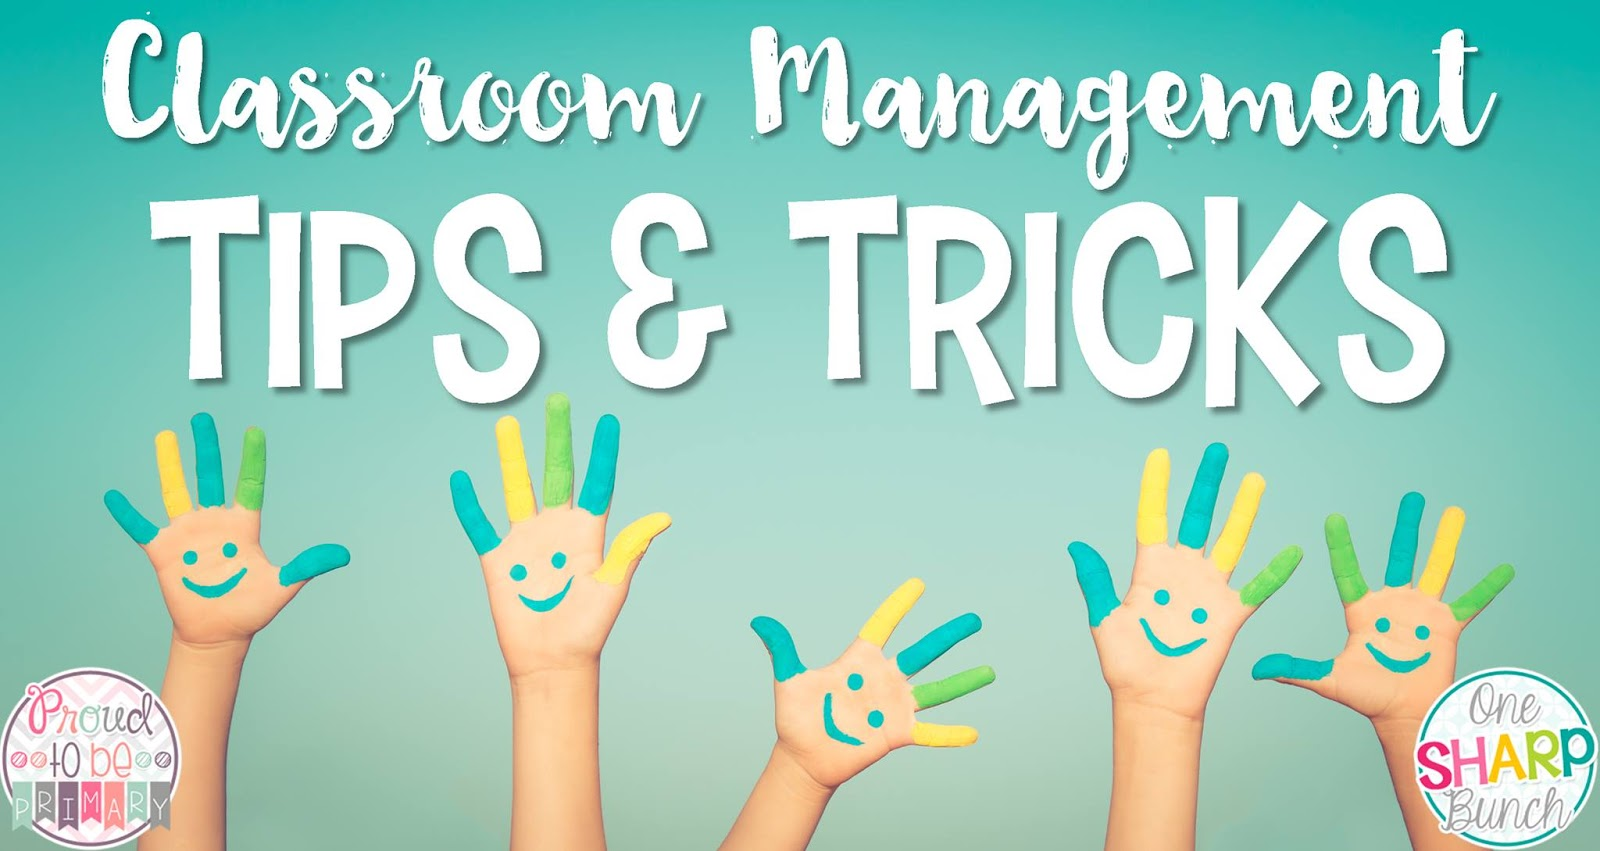 Classroom Management Ideas In Kindergarten ~ One sharp bunch classroom management tips tricks